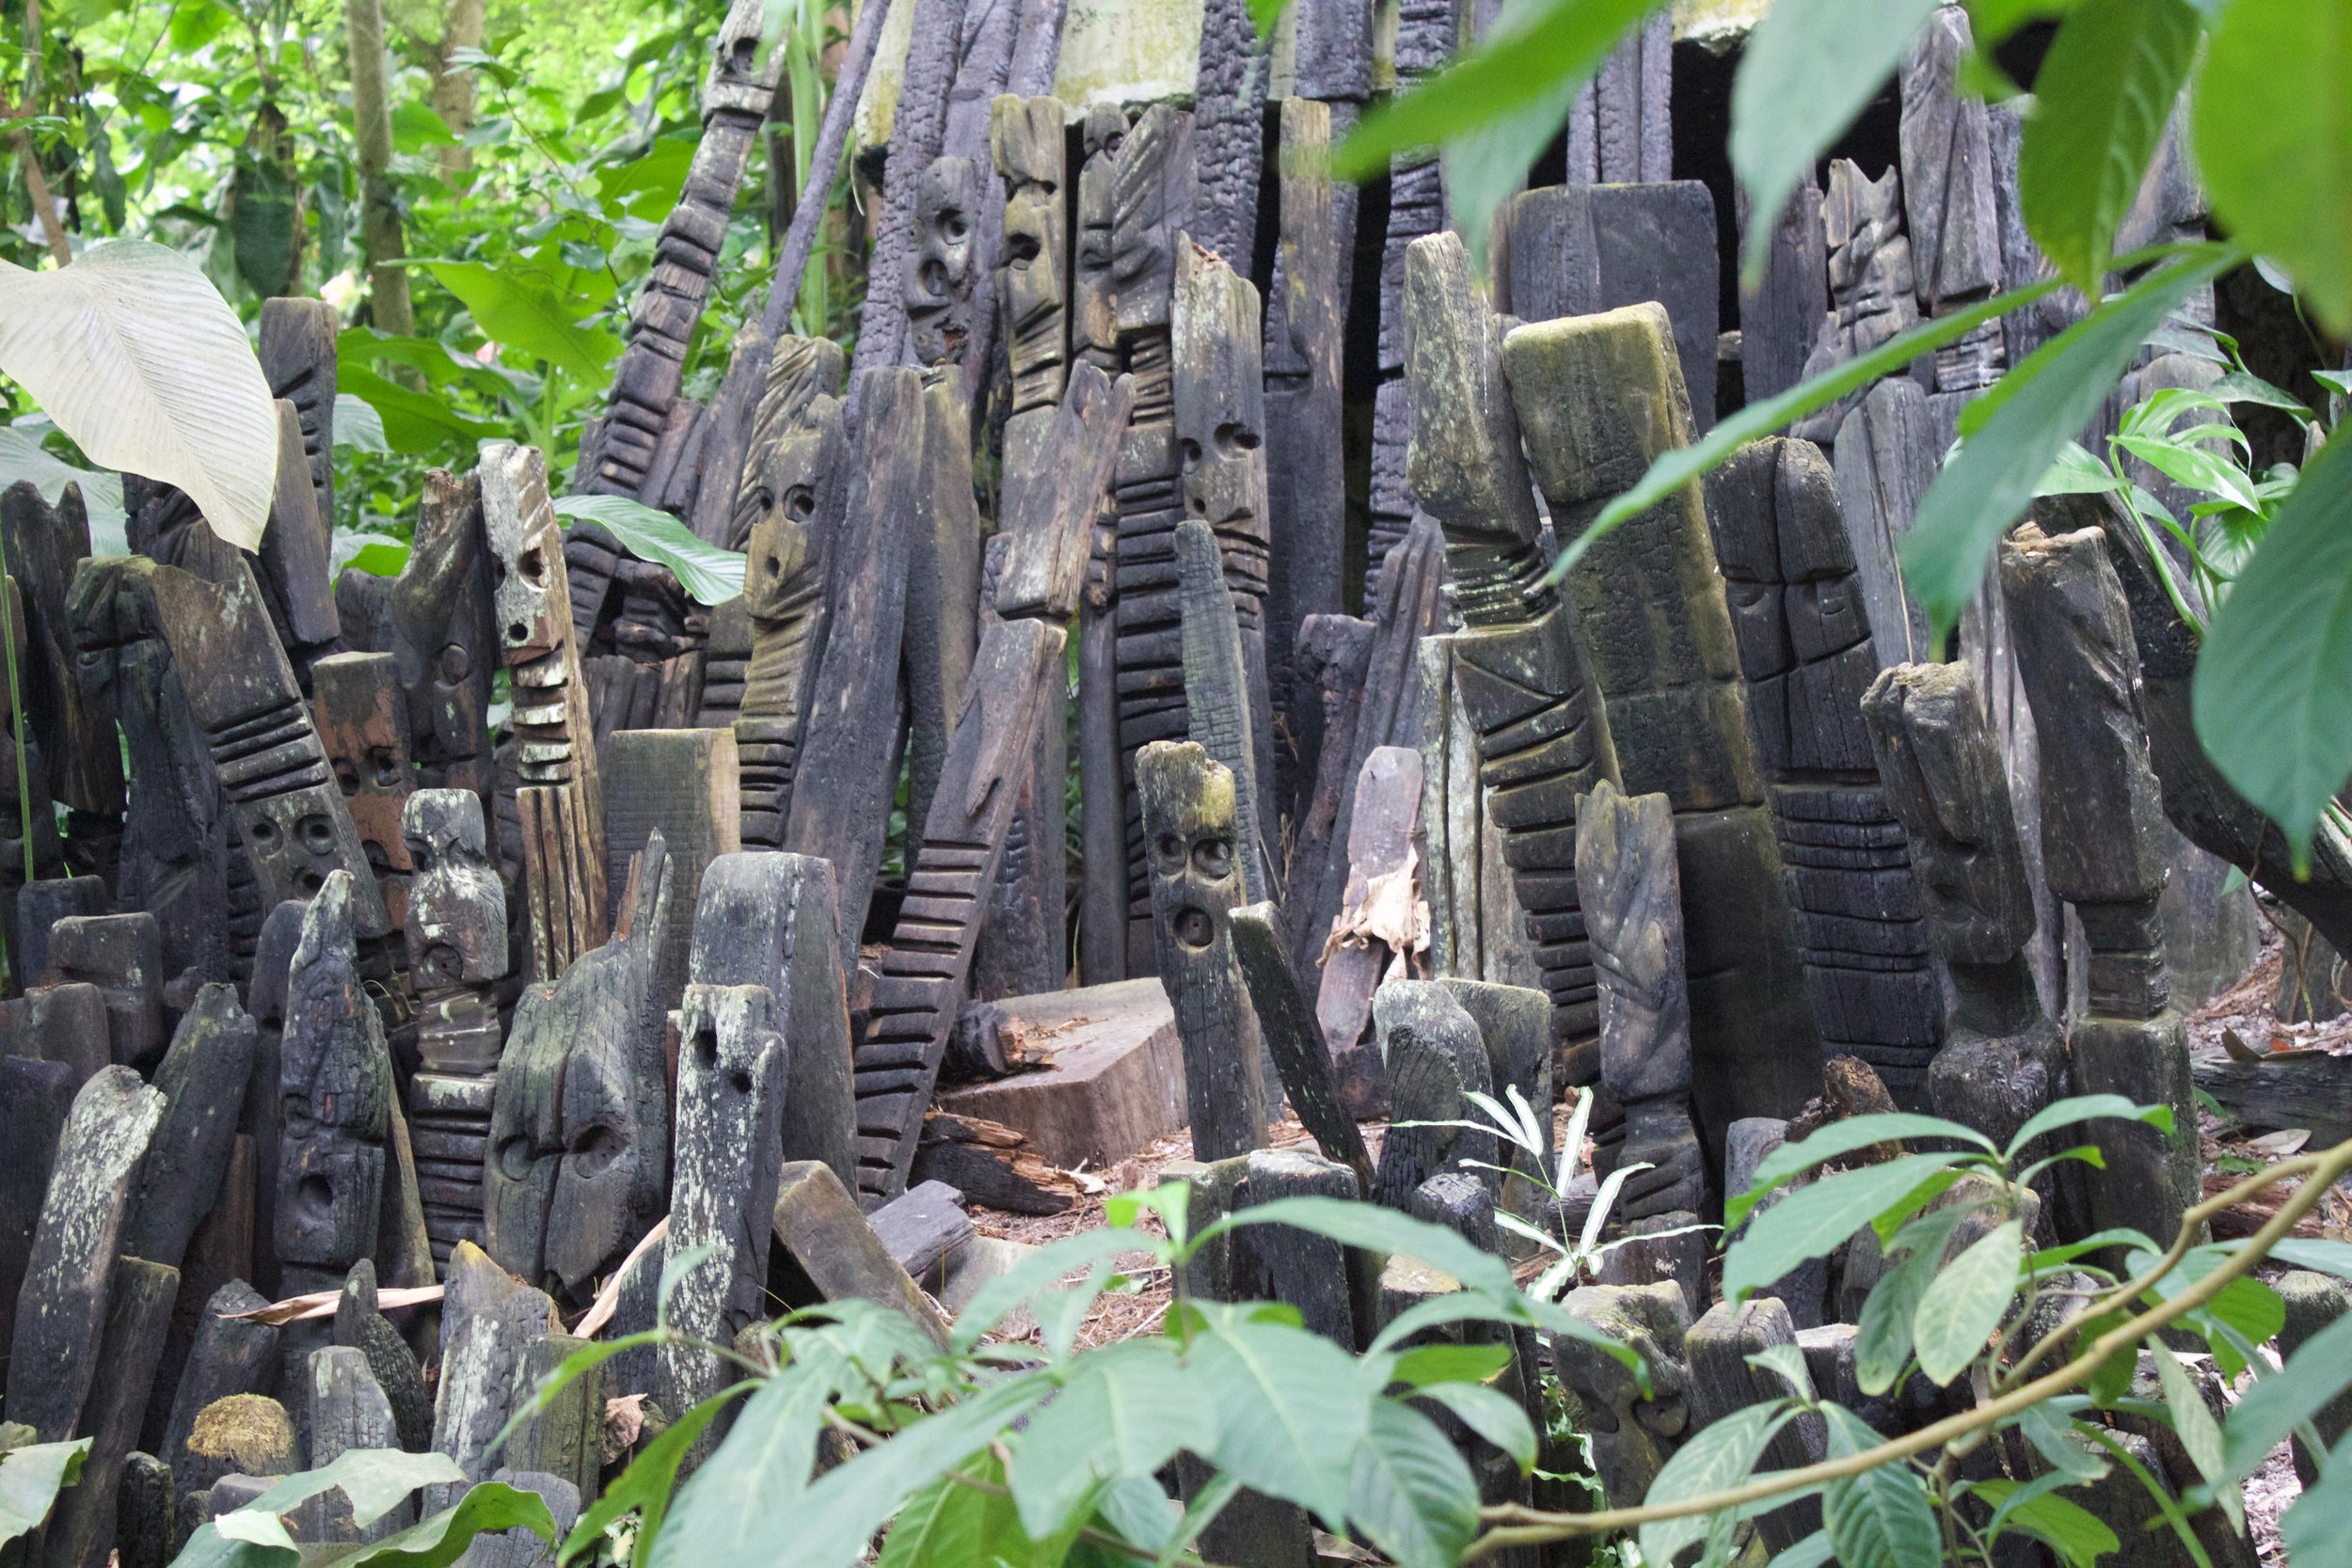 These Totems were created by West African Sculptor El Anatsui. The materials came from charred timbers  #recycled from a part of the  #Falmouth docks which were destroyed by fire. The wood which created these structures started their life as trees in  #West  #Africa . 🌿🌴🌿 © AWA 2017